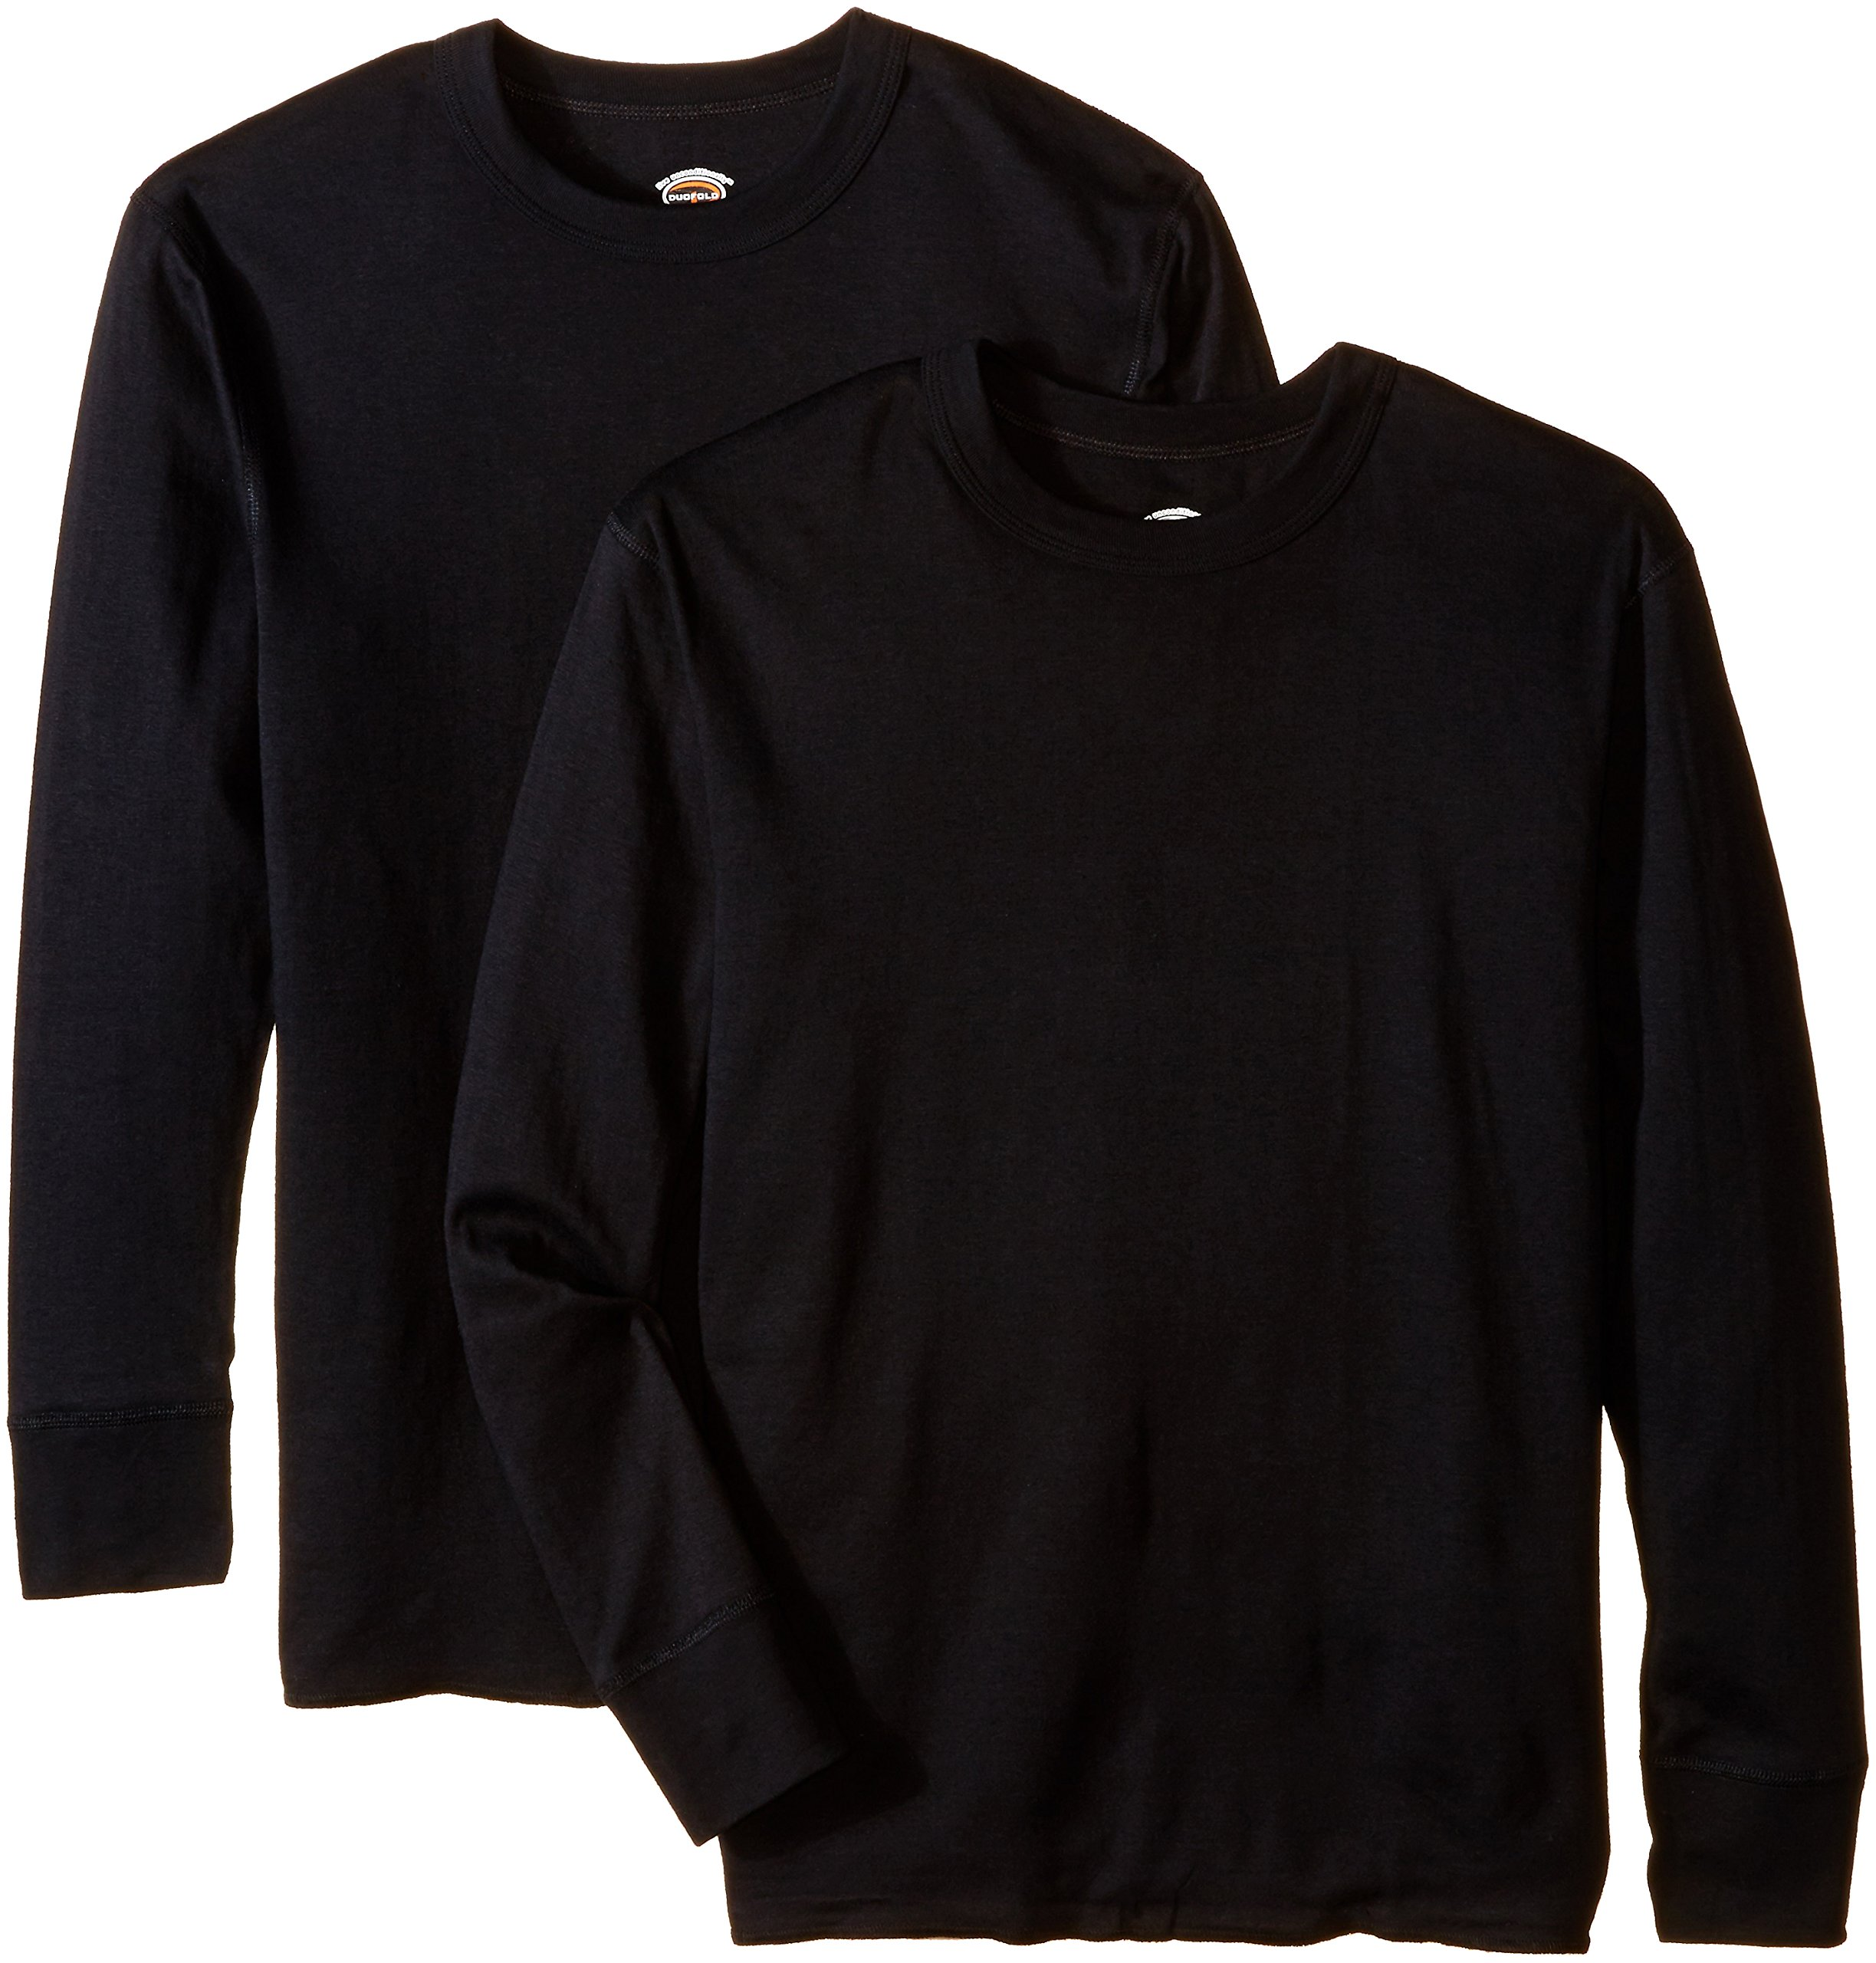 Duofold Men's Thermal Wicking Crew (Pack of 2)